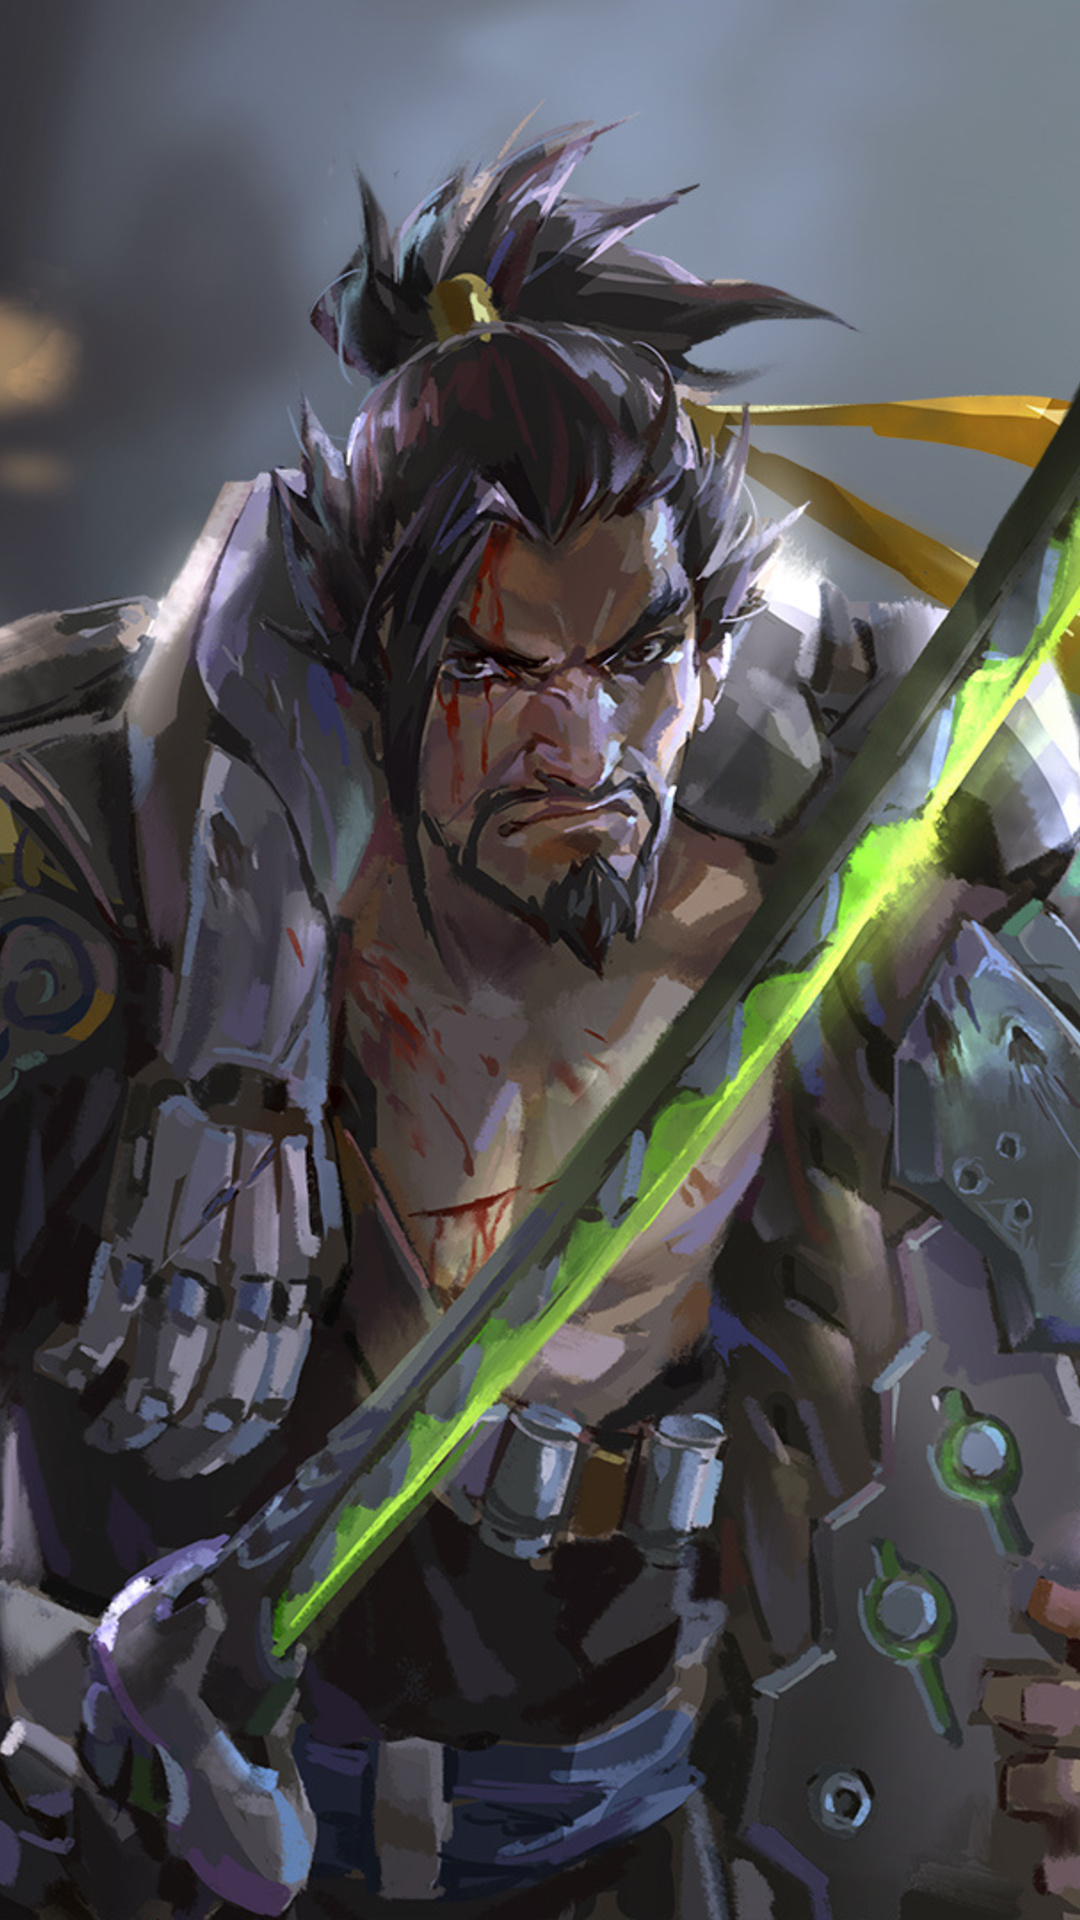 1080x1920 genji hanzo overwatch artwork iphone 7,6s,6 plus, pixel xl